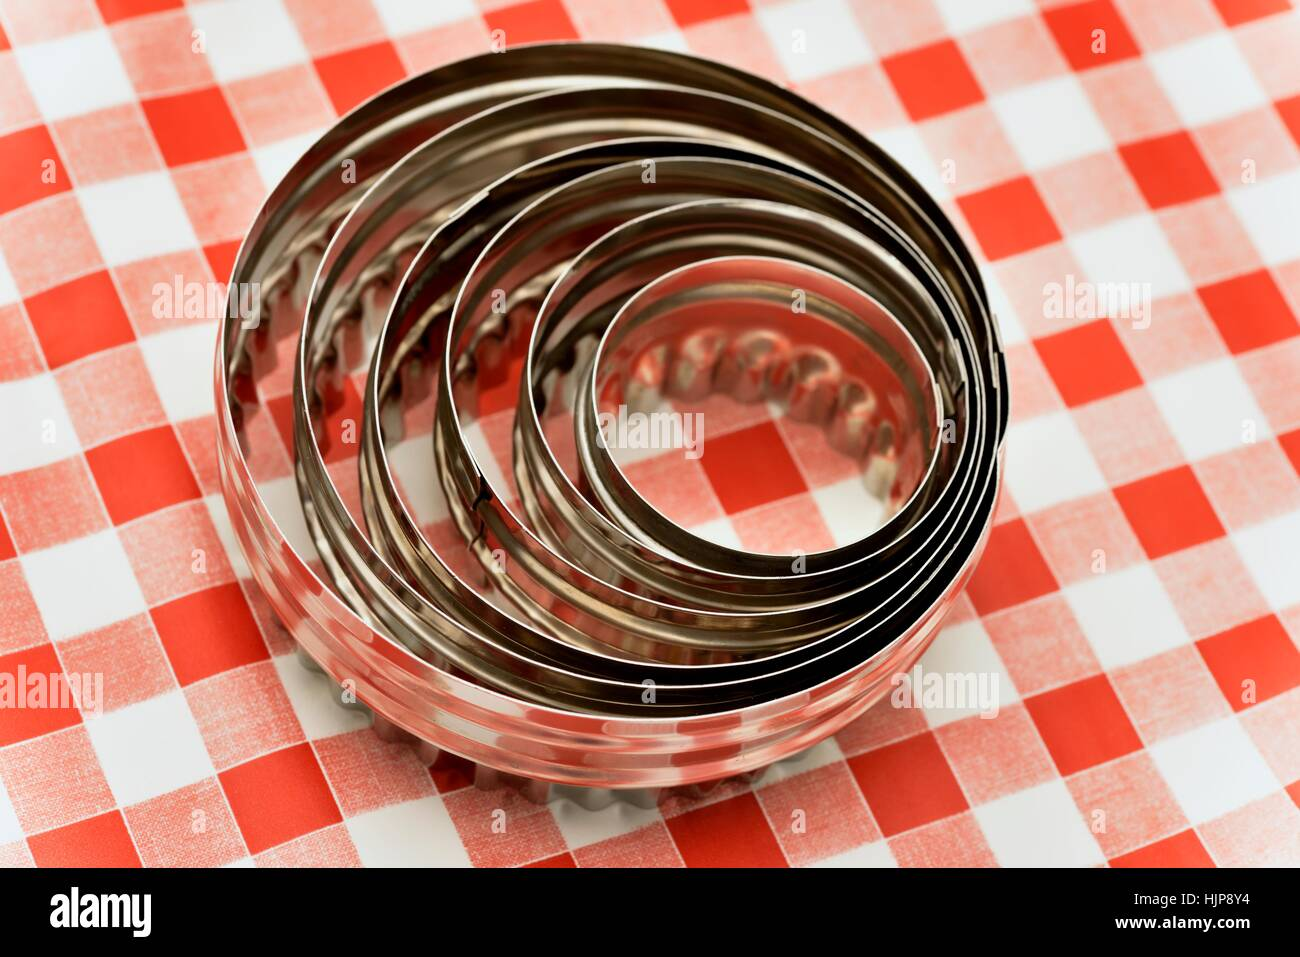 Set of 6 double sided stainless steel cutter - Stock Image